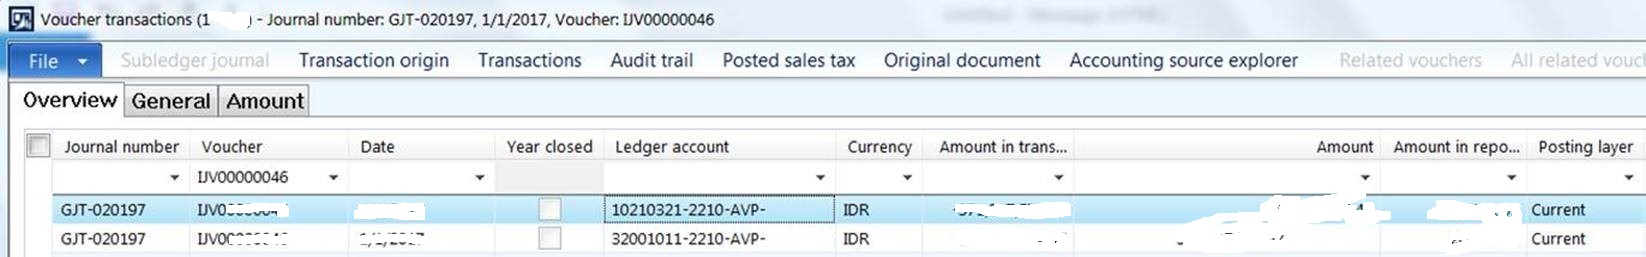 Get Invoice Reference Number Microsoft Dynamics AX Forum Community - Invoice reference